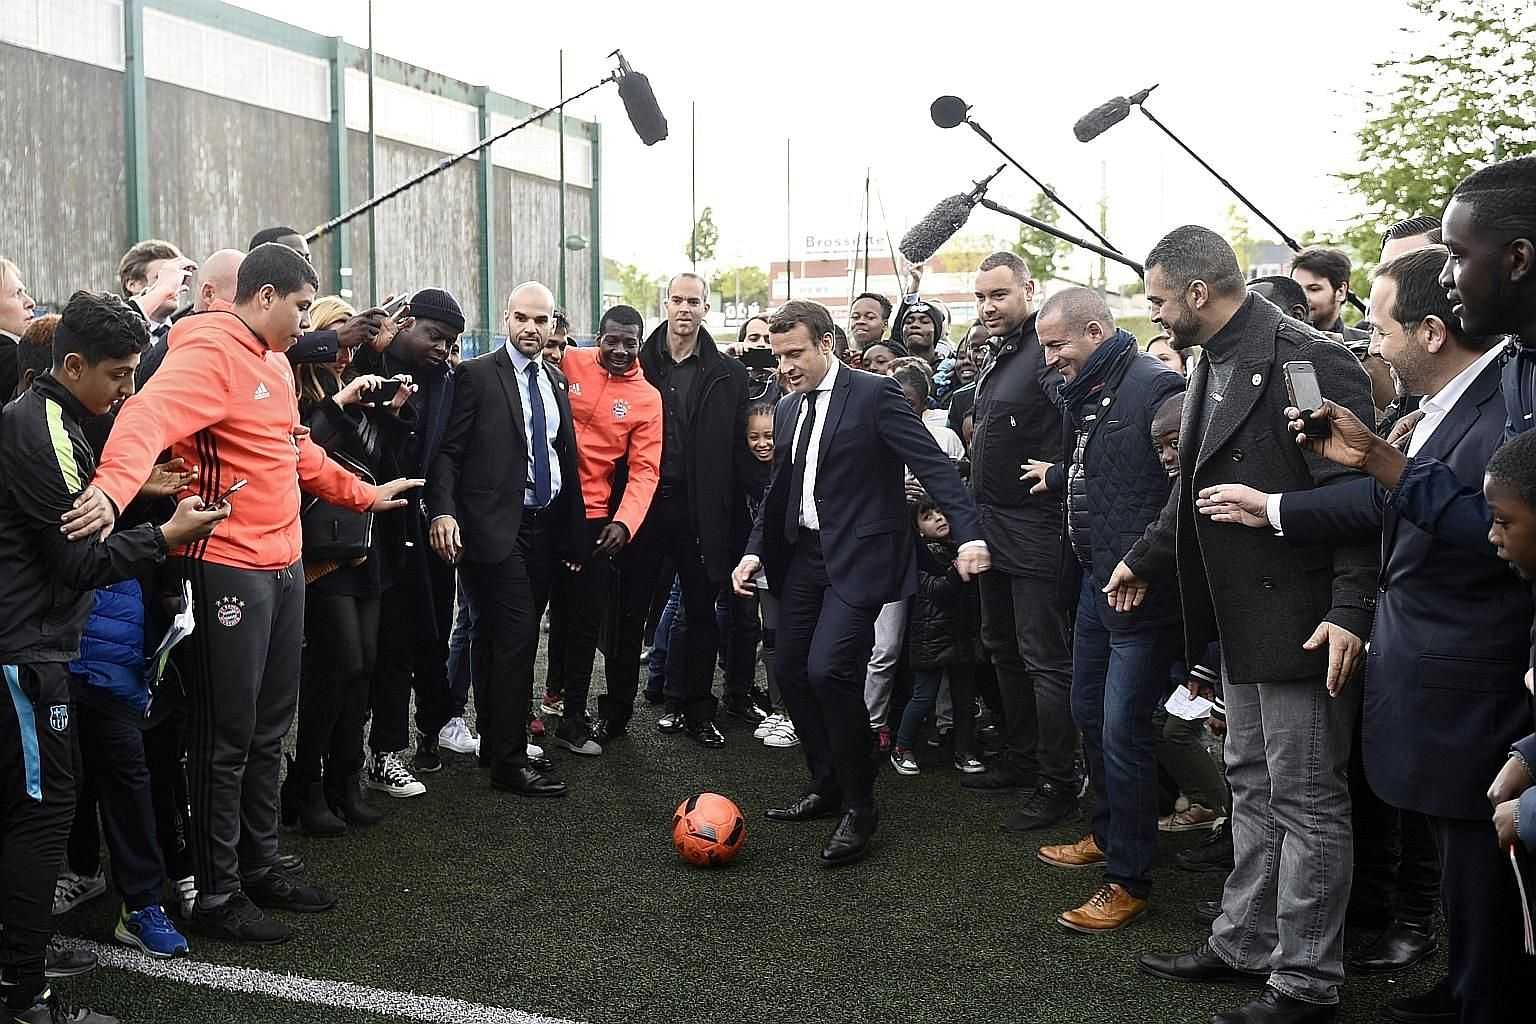 French presidential candidate Emmanuel Macron kicking a football during a campaign visit to Sarcelles, north Paris, on Thursday. The camp has accused Russia of attacking its databases, fuelling suspicions that the Kremlin is trying to undermine the c